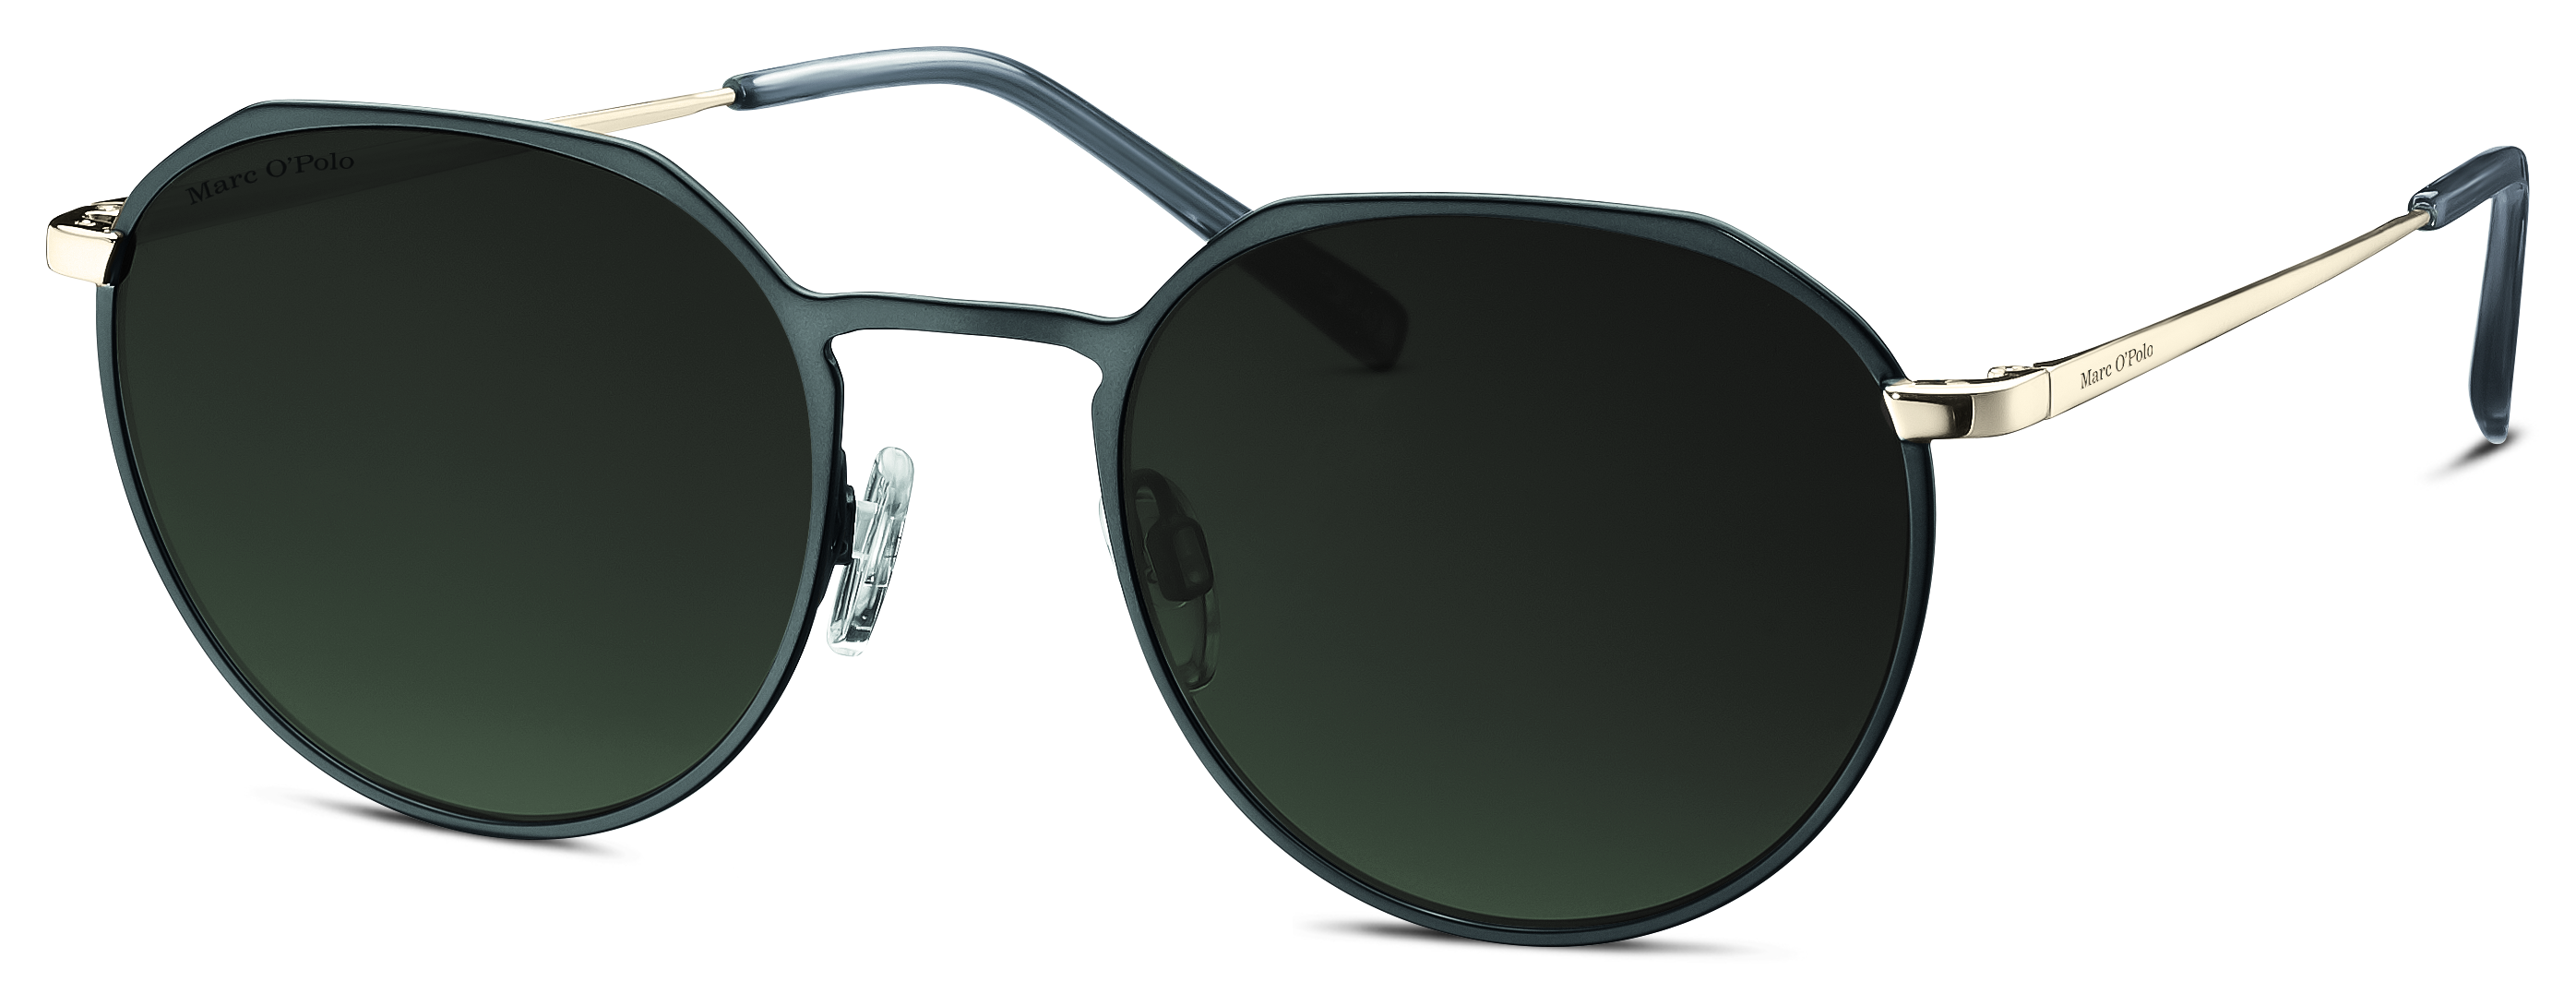 MARC O'POLO Eyewear  505079 30